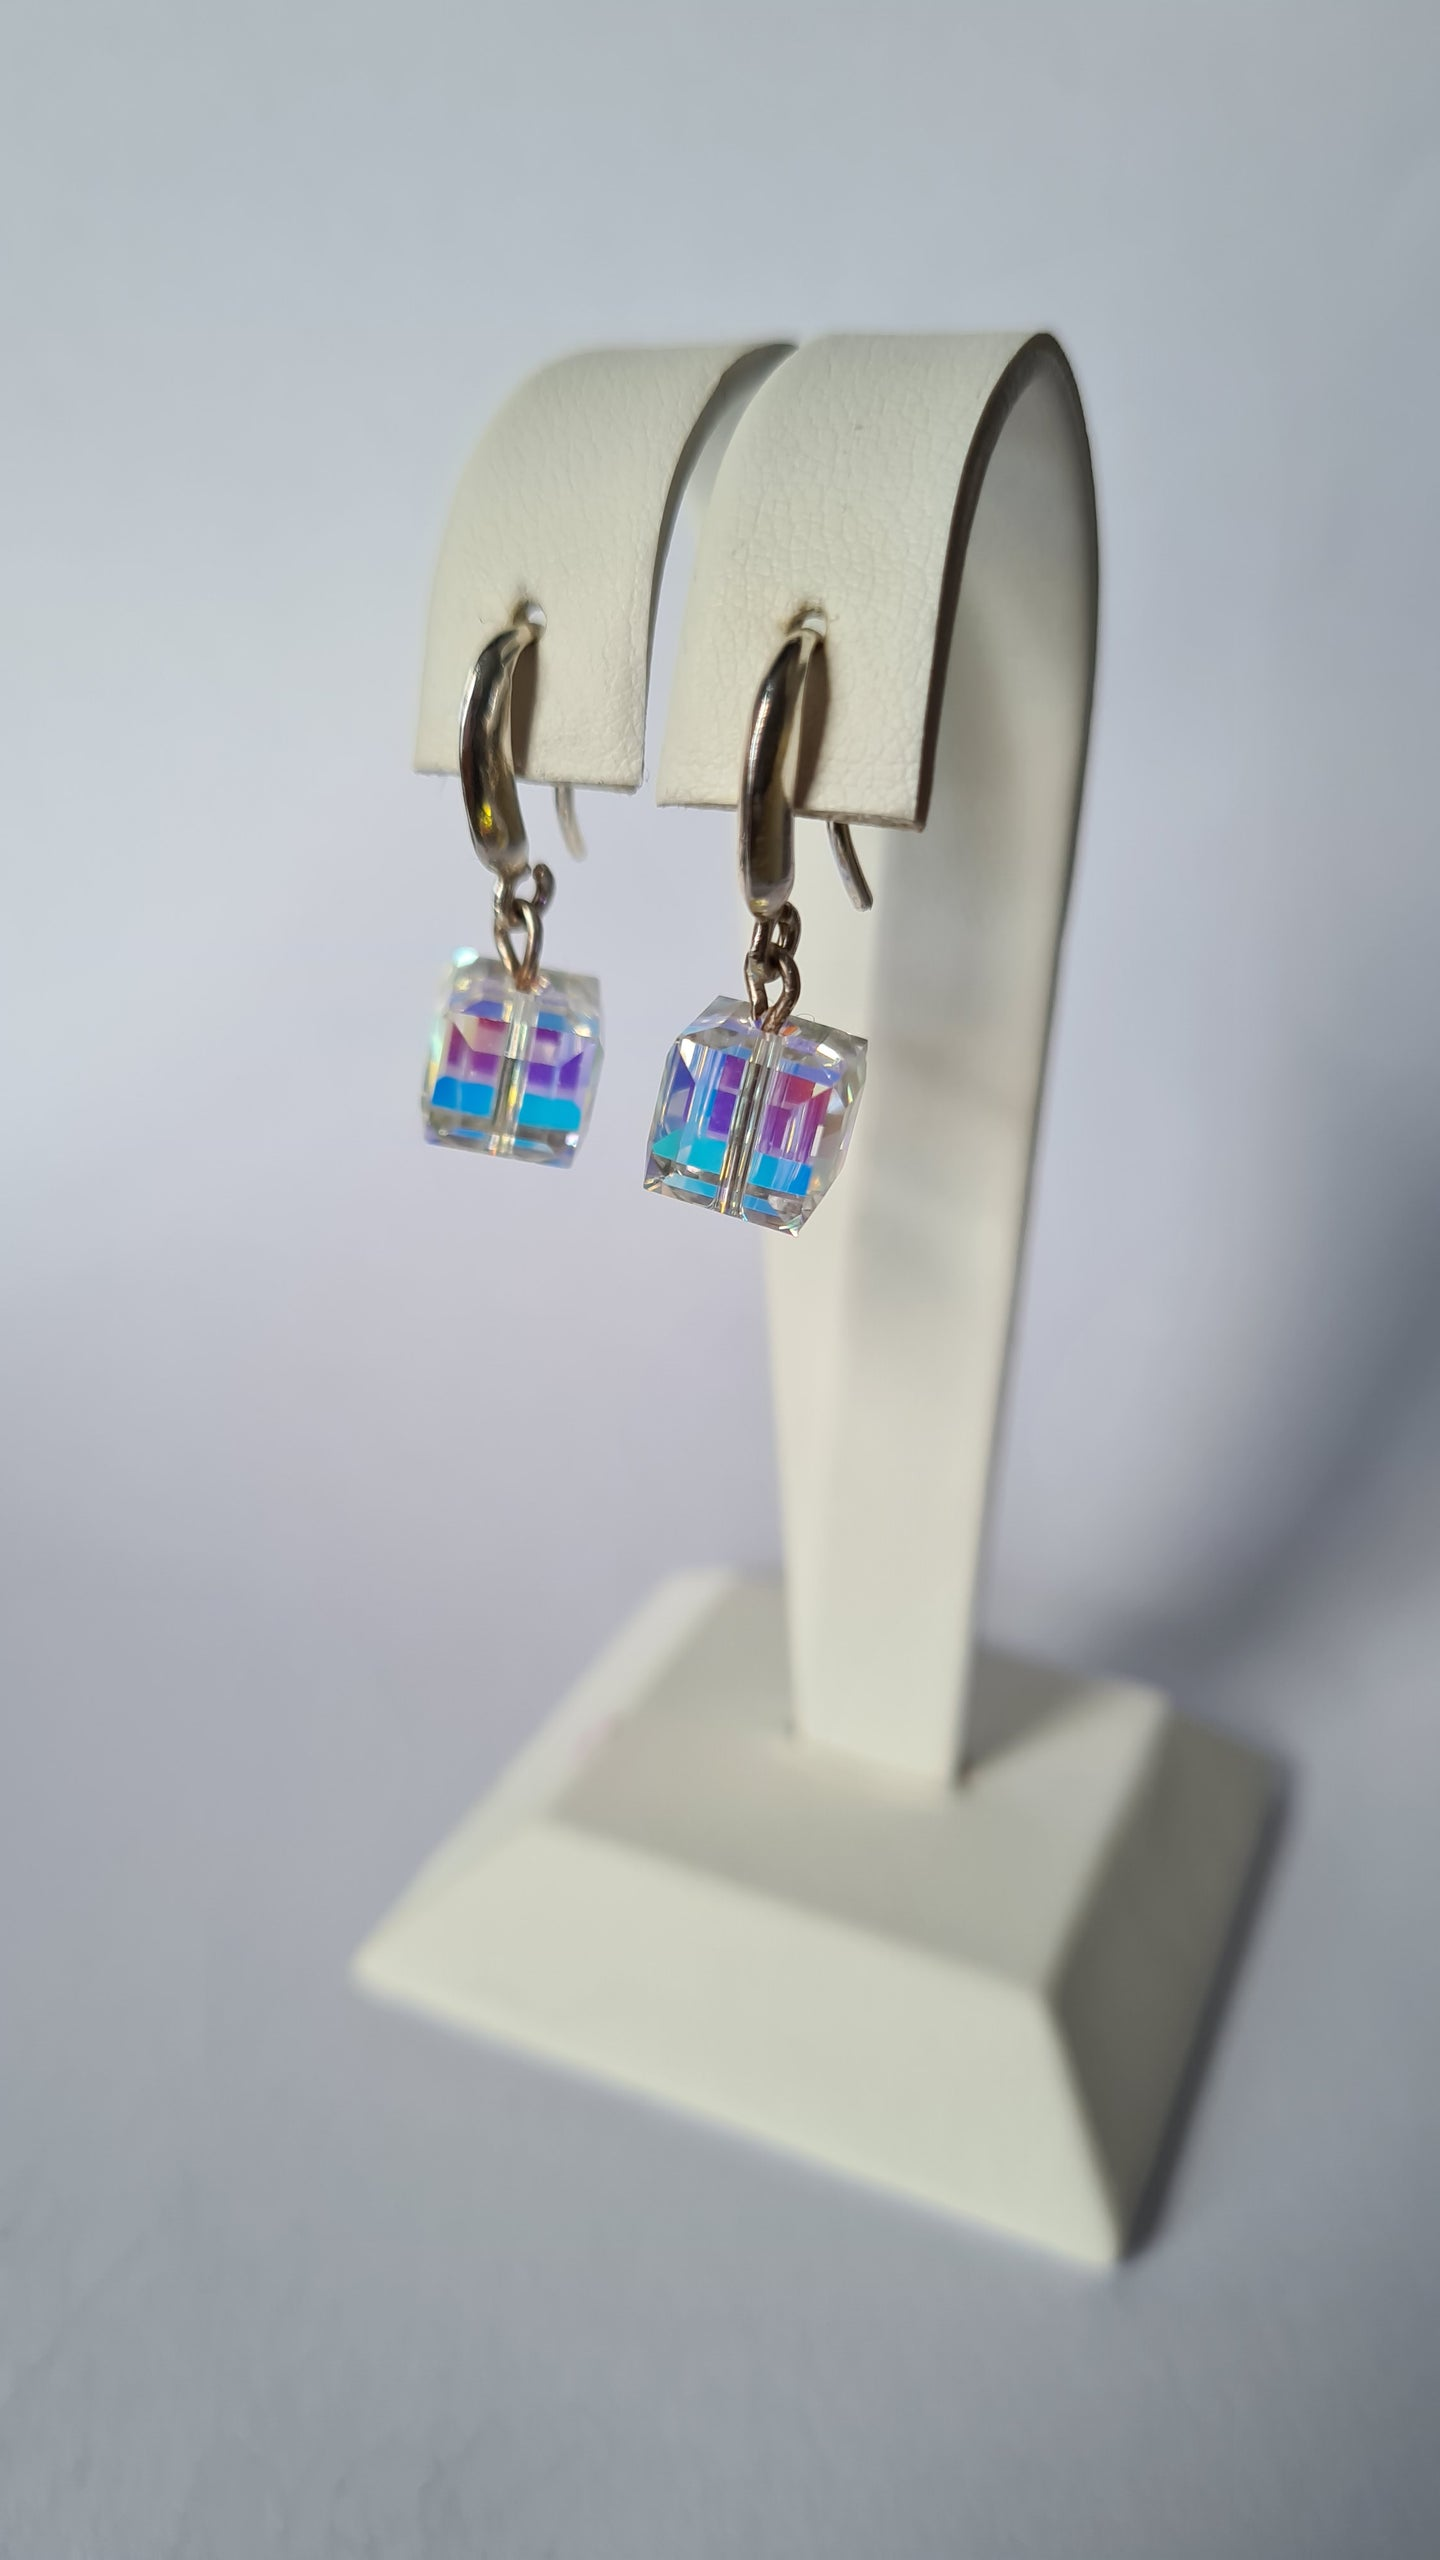 One Cube Dangle Earrings with Swarovski Crystals